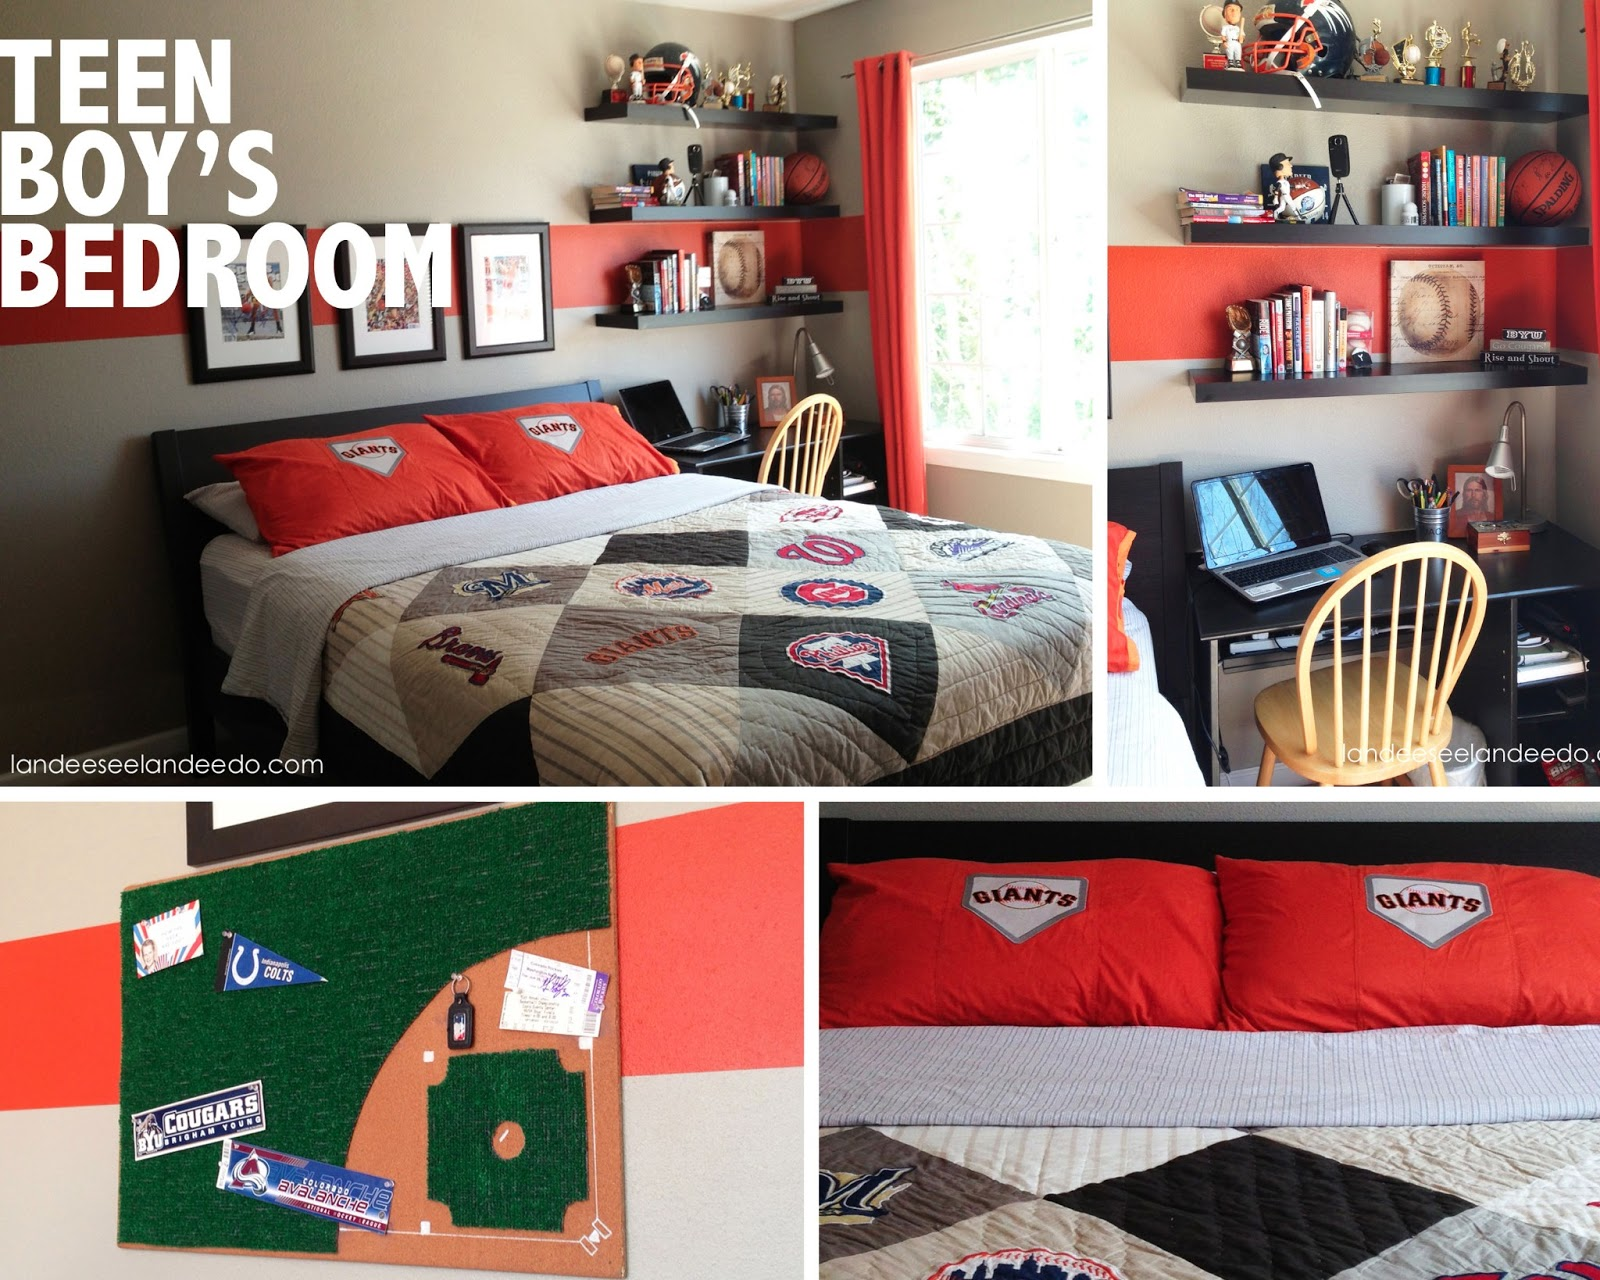 Teen Boy Bedroom Reveal - landeelu.com